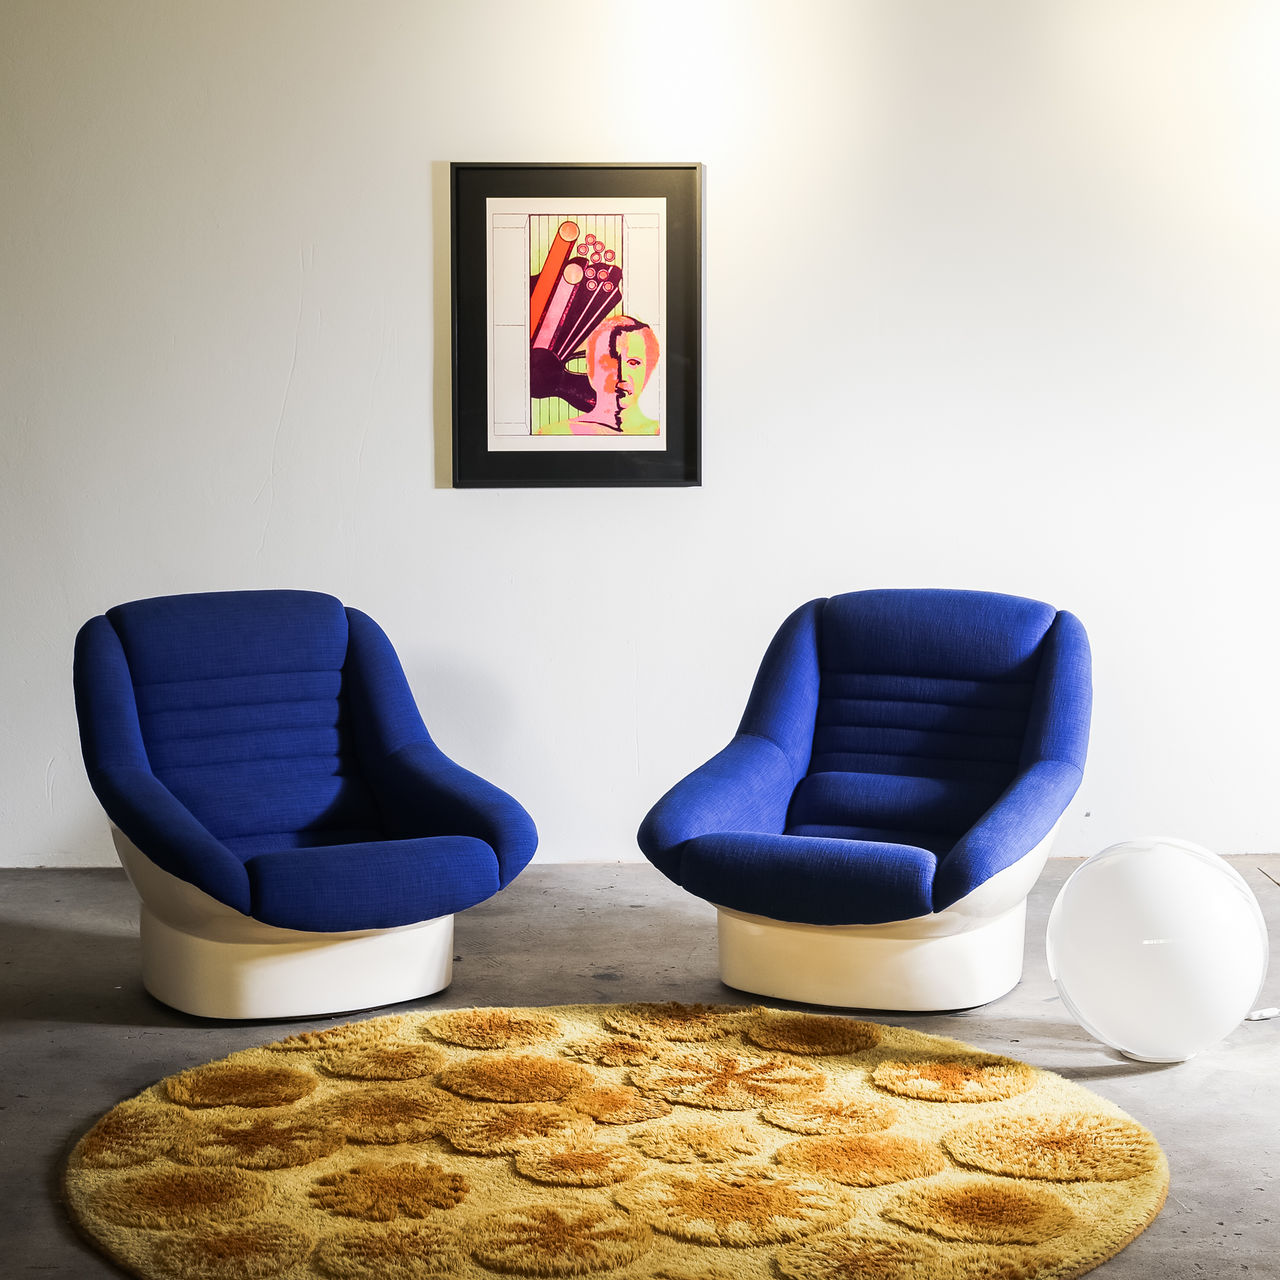 Alda chair by Cesare Casati and Enzo Hybsch